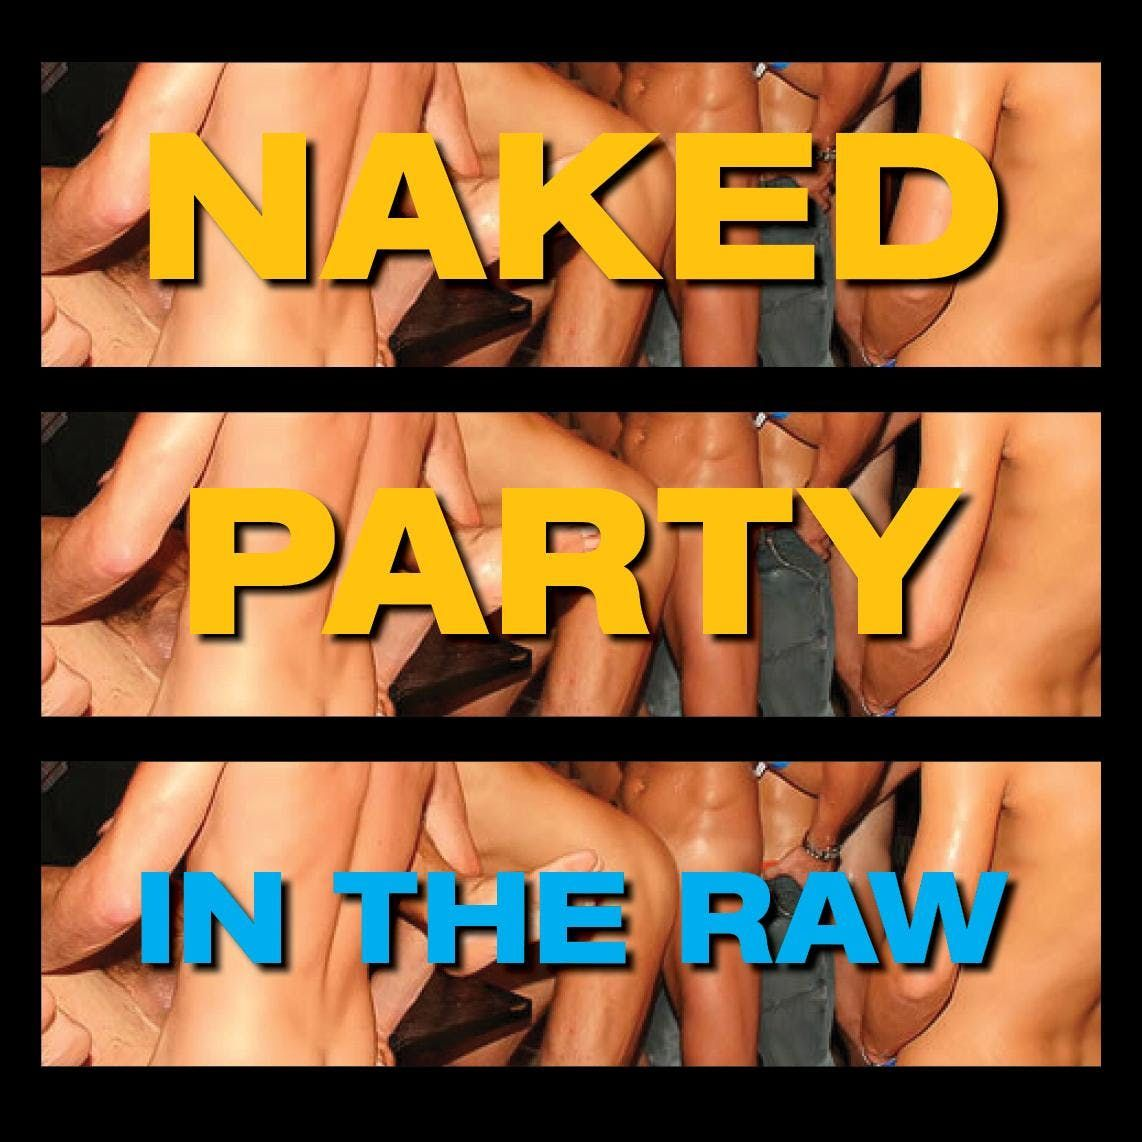 In The Raw Naked Party Mardi Gras week